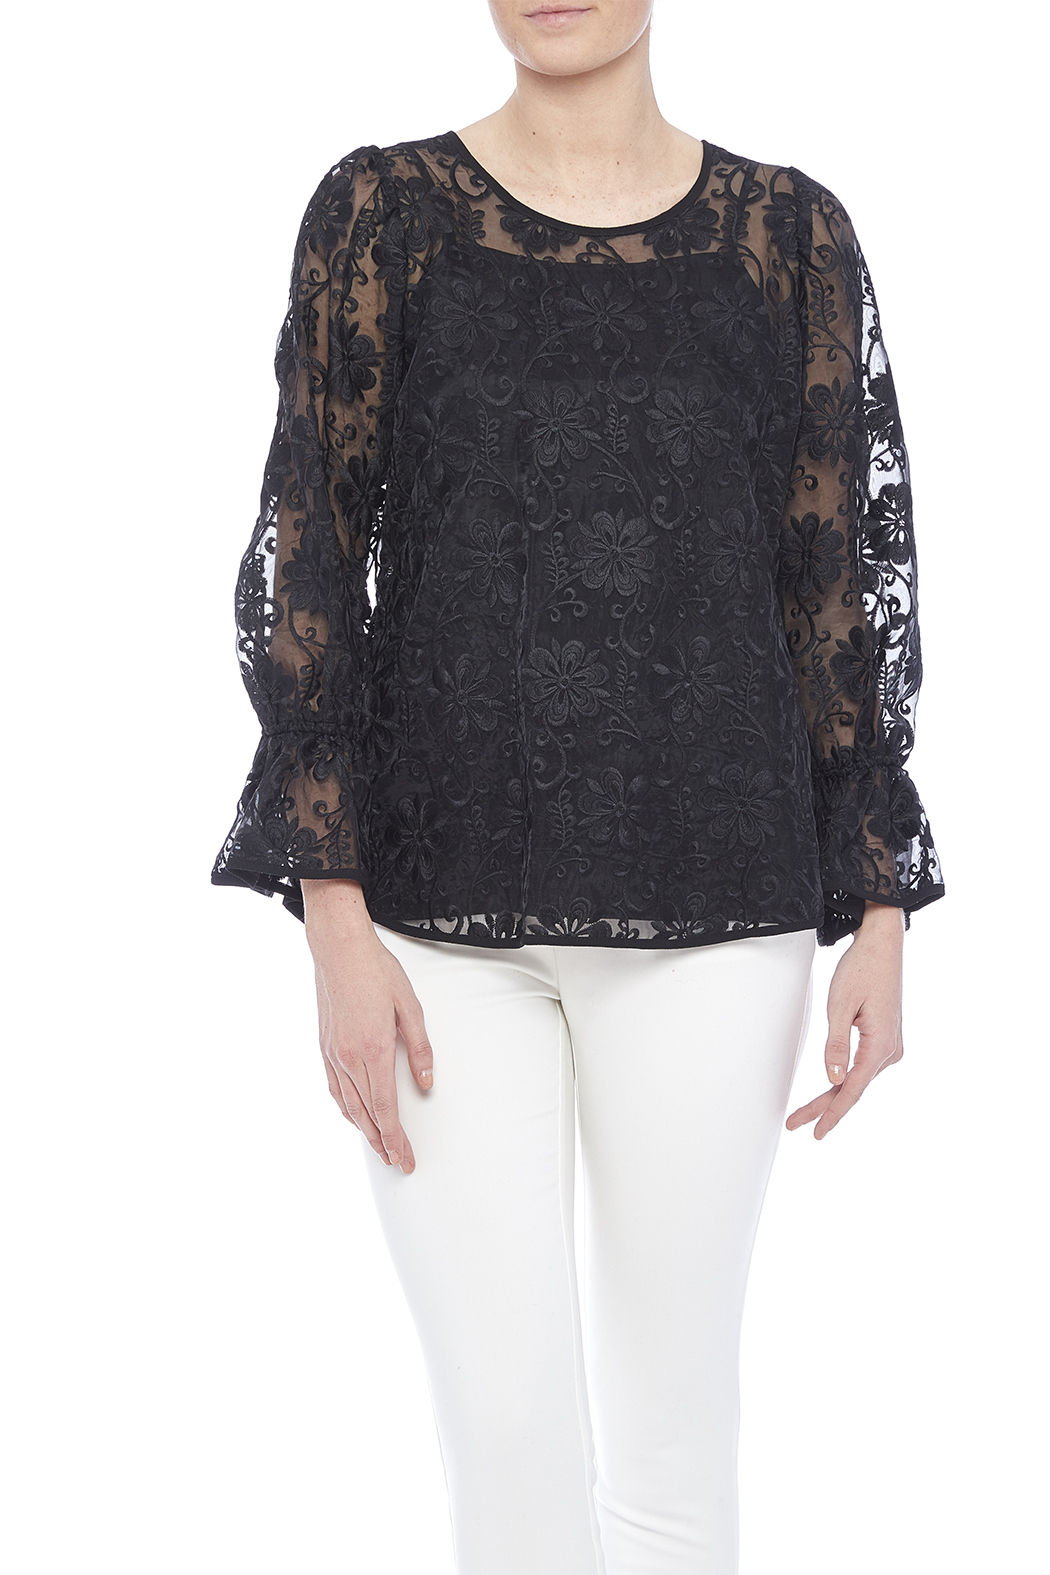 Voom Black Embroidered Top - Main Image